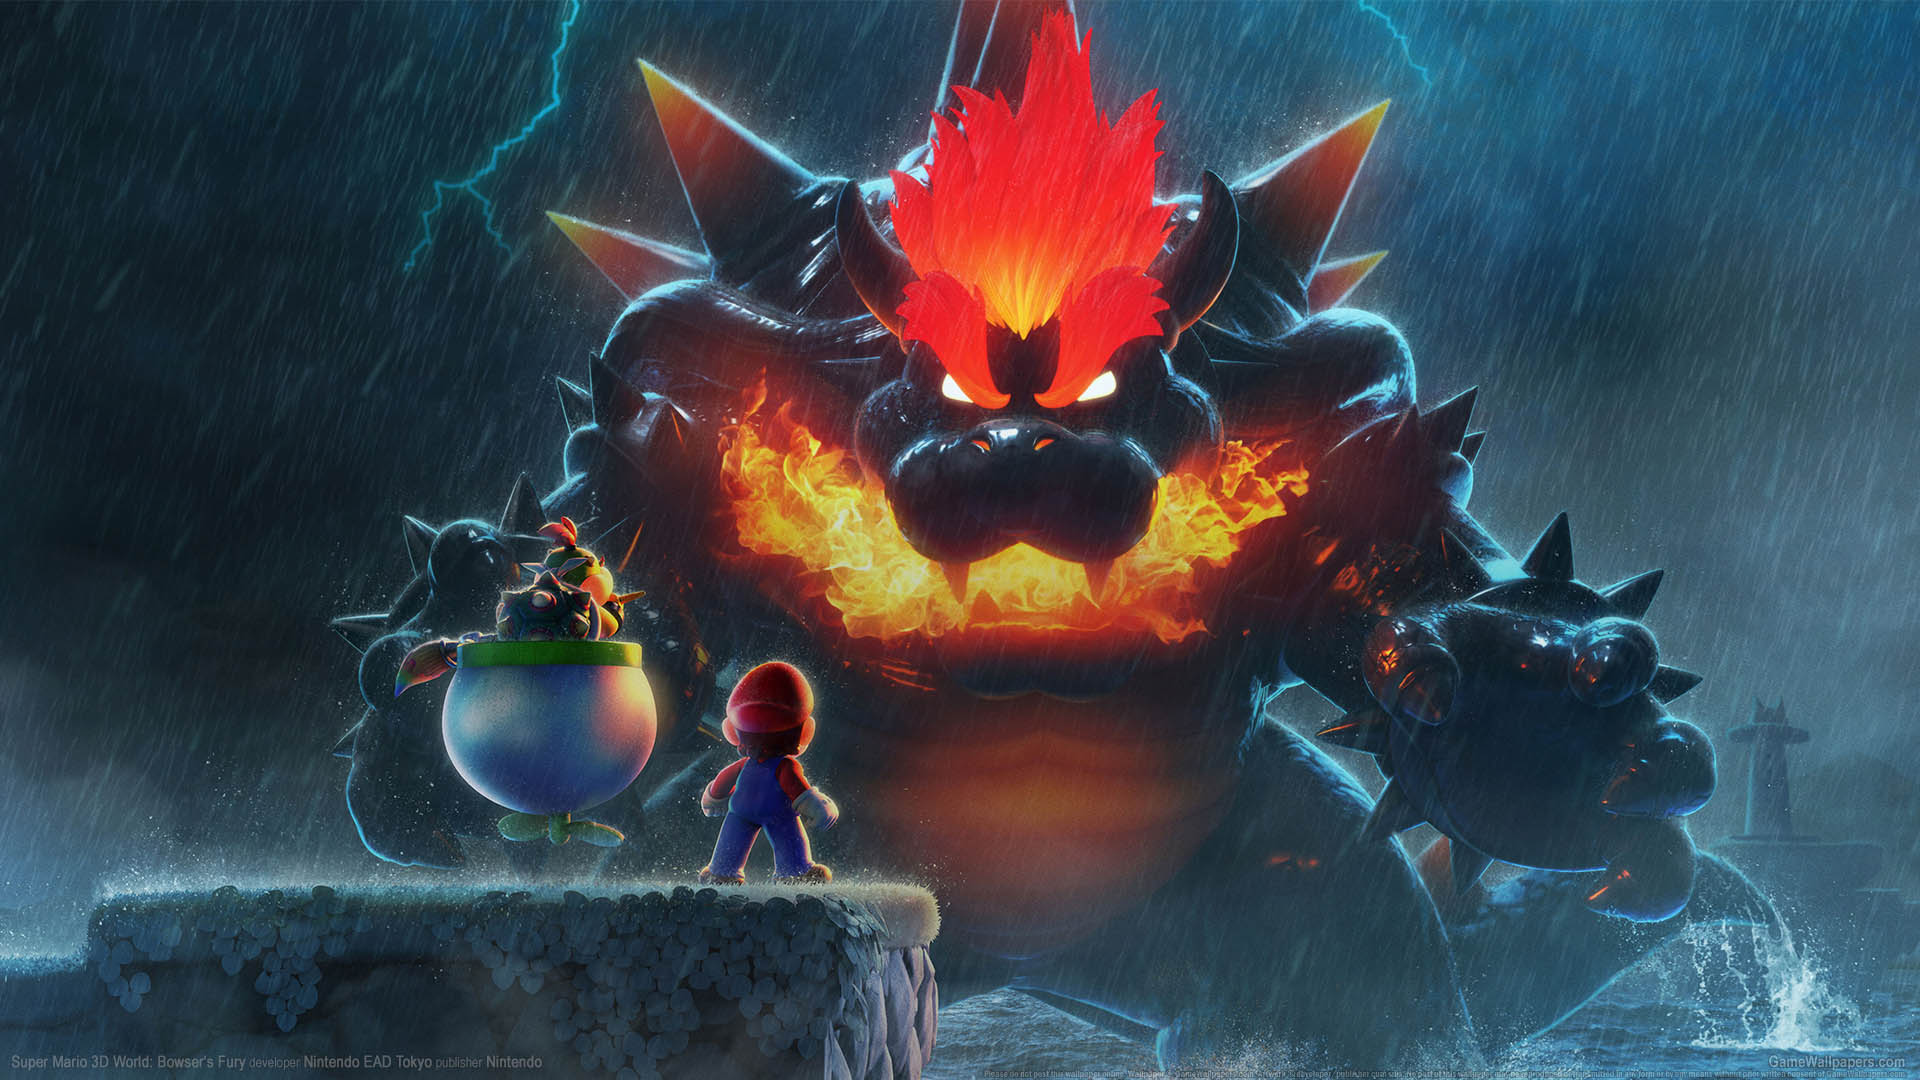 Super Mario 3D World: Bowser's Fury Hintergrundbild 01 1920x1080